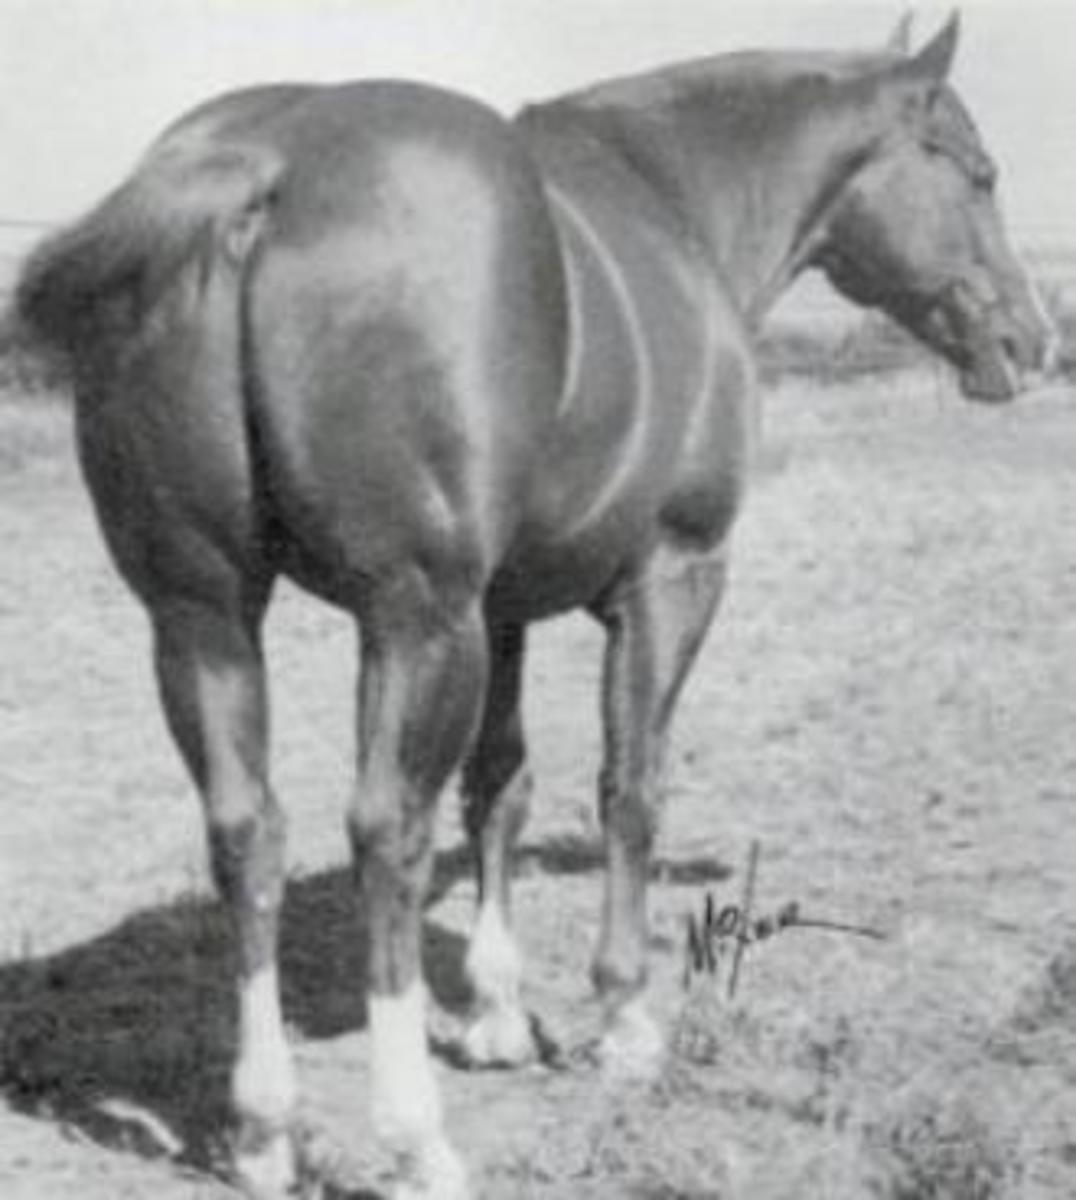 Leo, AQHA hall of fame inductee and leading broodmare sire.  Great broodmare cross with King stallions. All photos are the property of their respective owners and may not be copied or reproduced without the owner's prior permission.